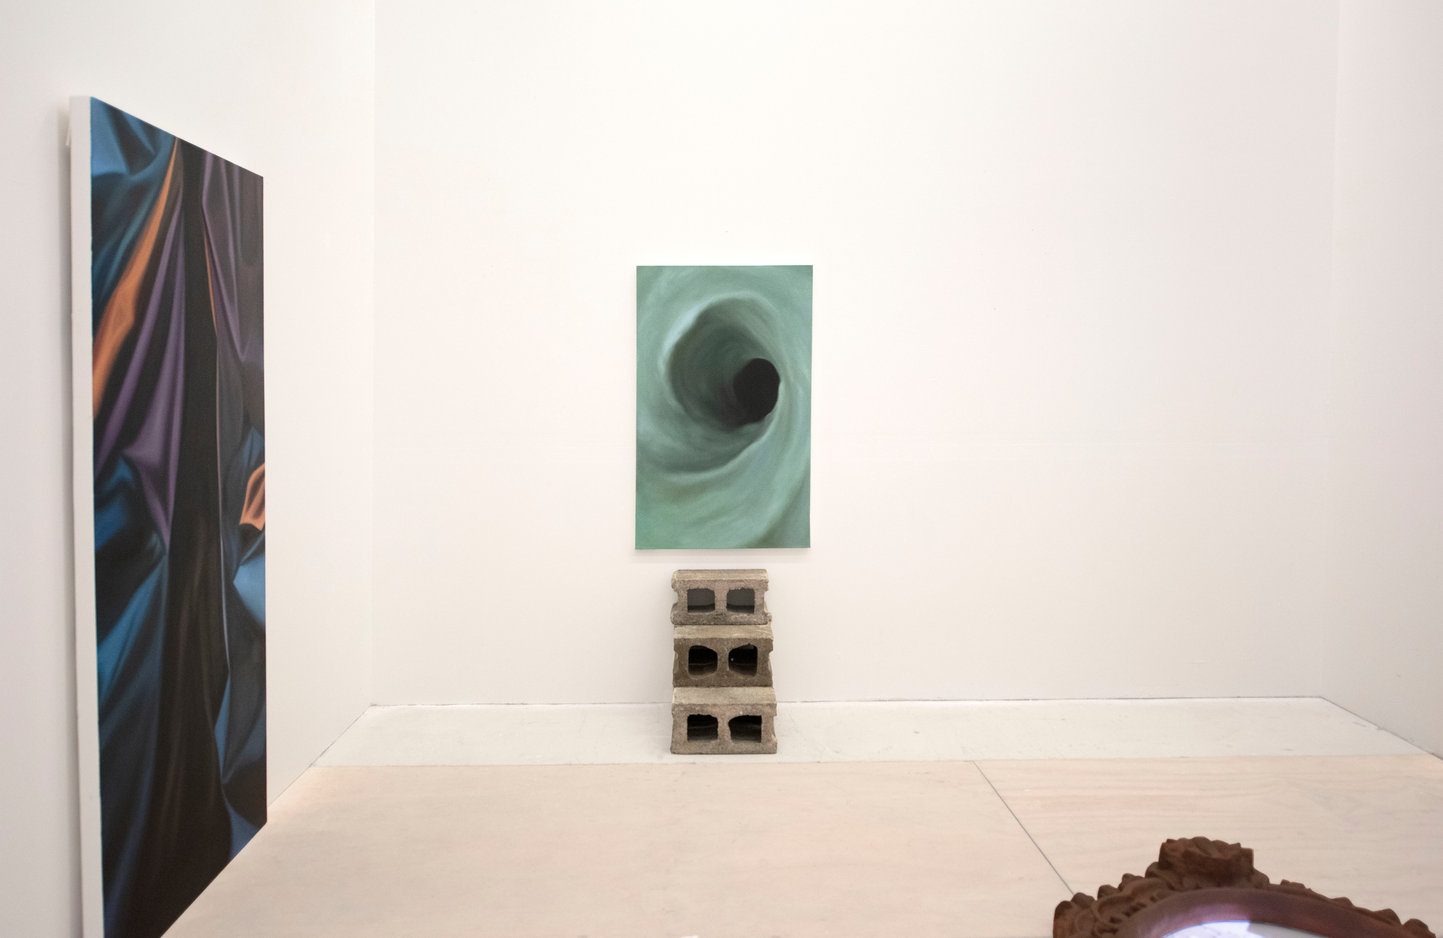 Call of the Void, installation view, 2020